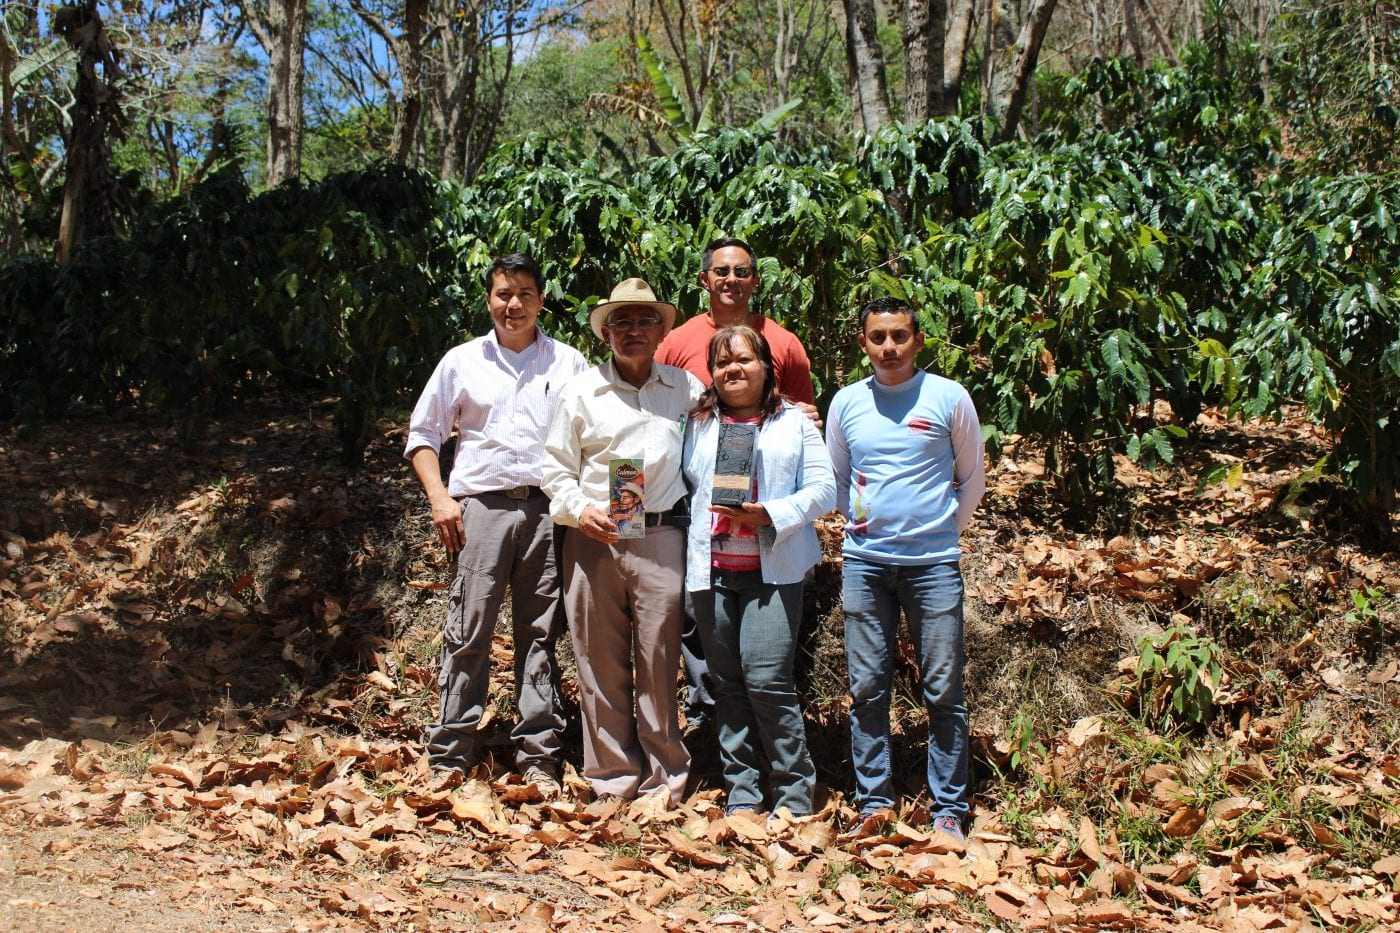 The family, with Luis Oliva on the far Left